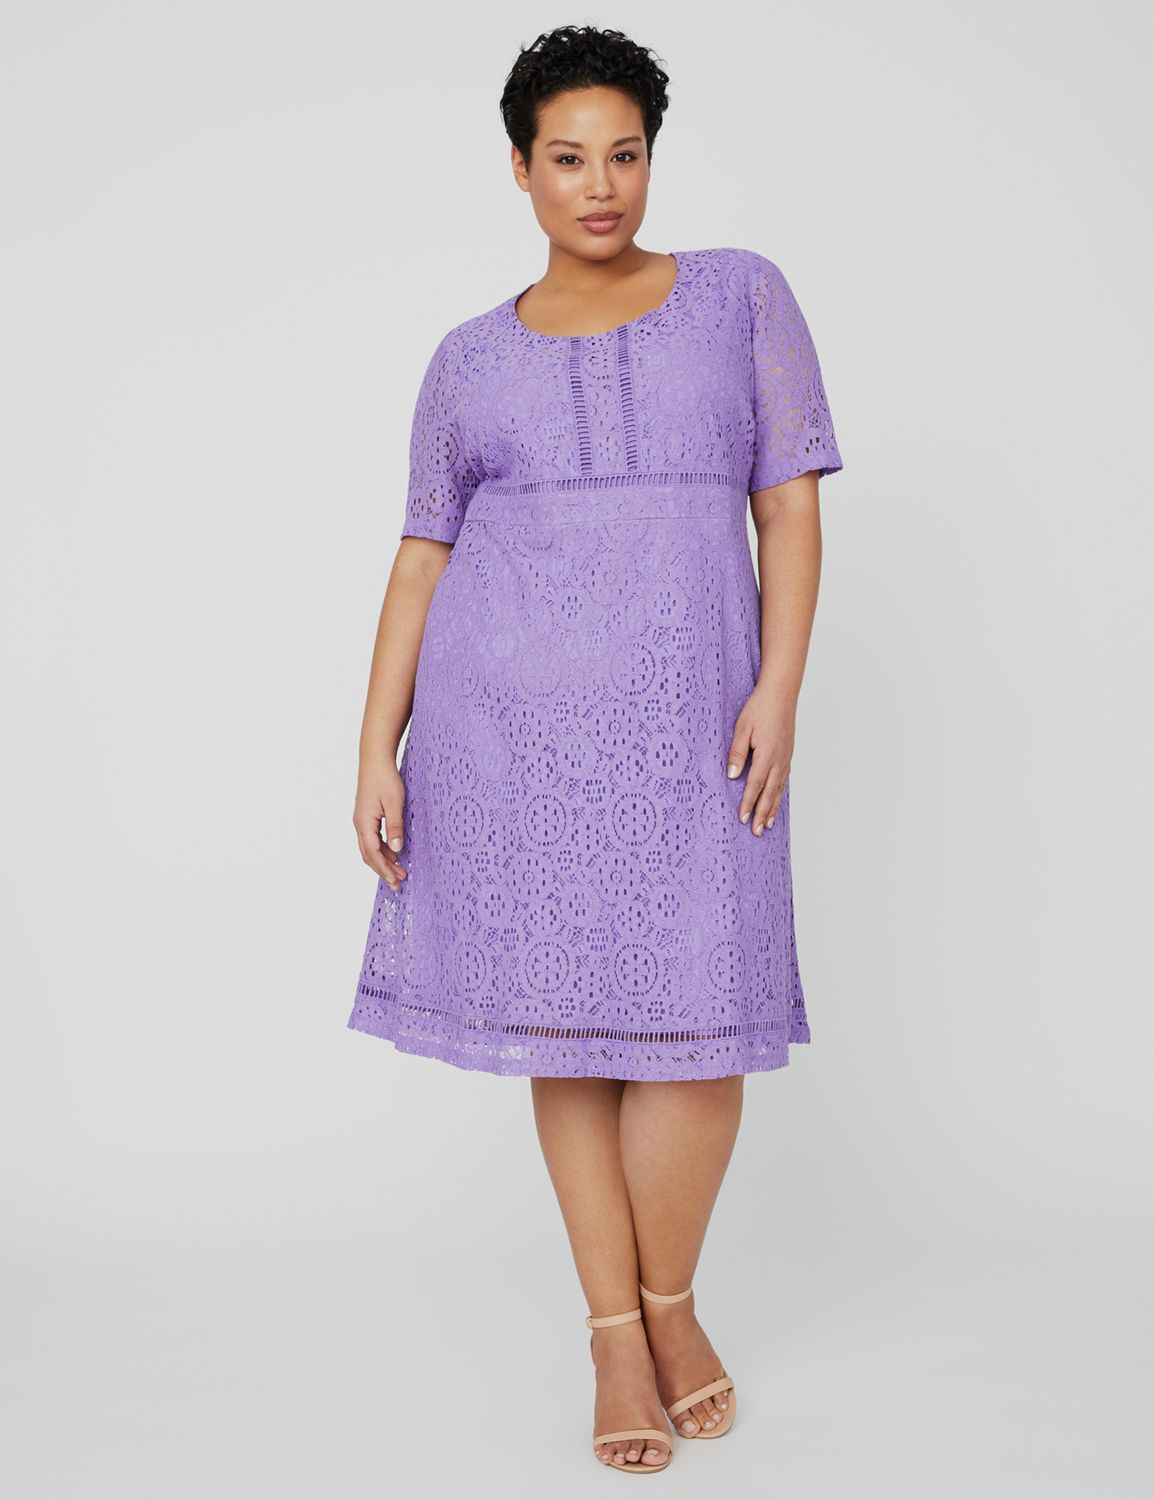 Violet Lace Dress 1091036 A Line Lace Dress with Trim MP-300100575